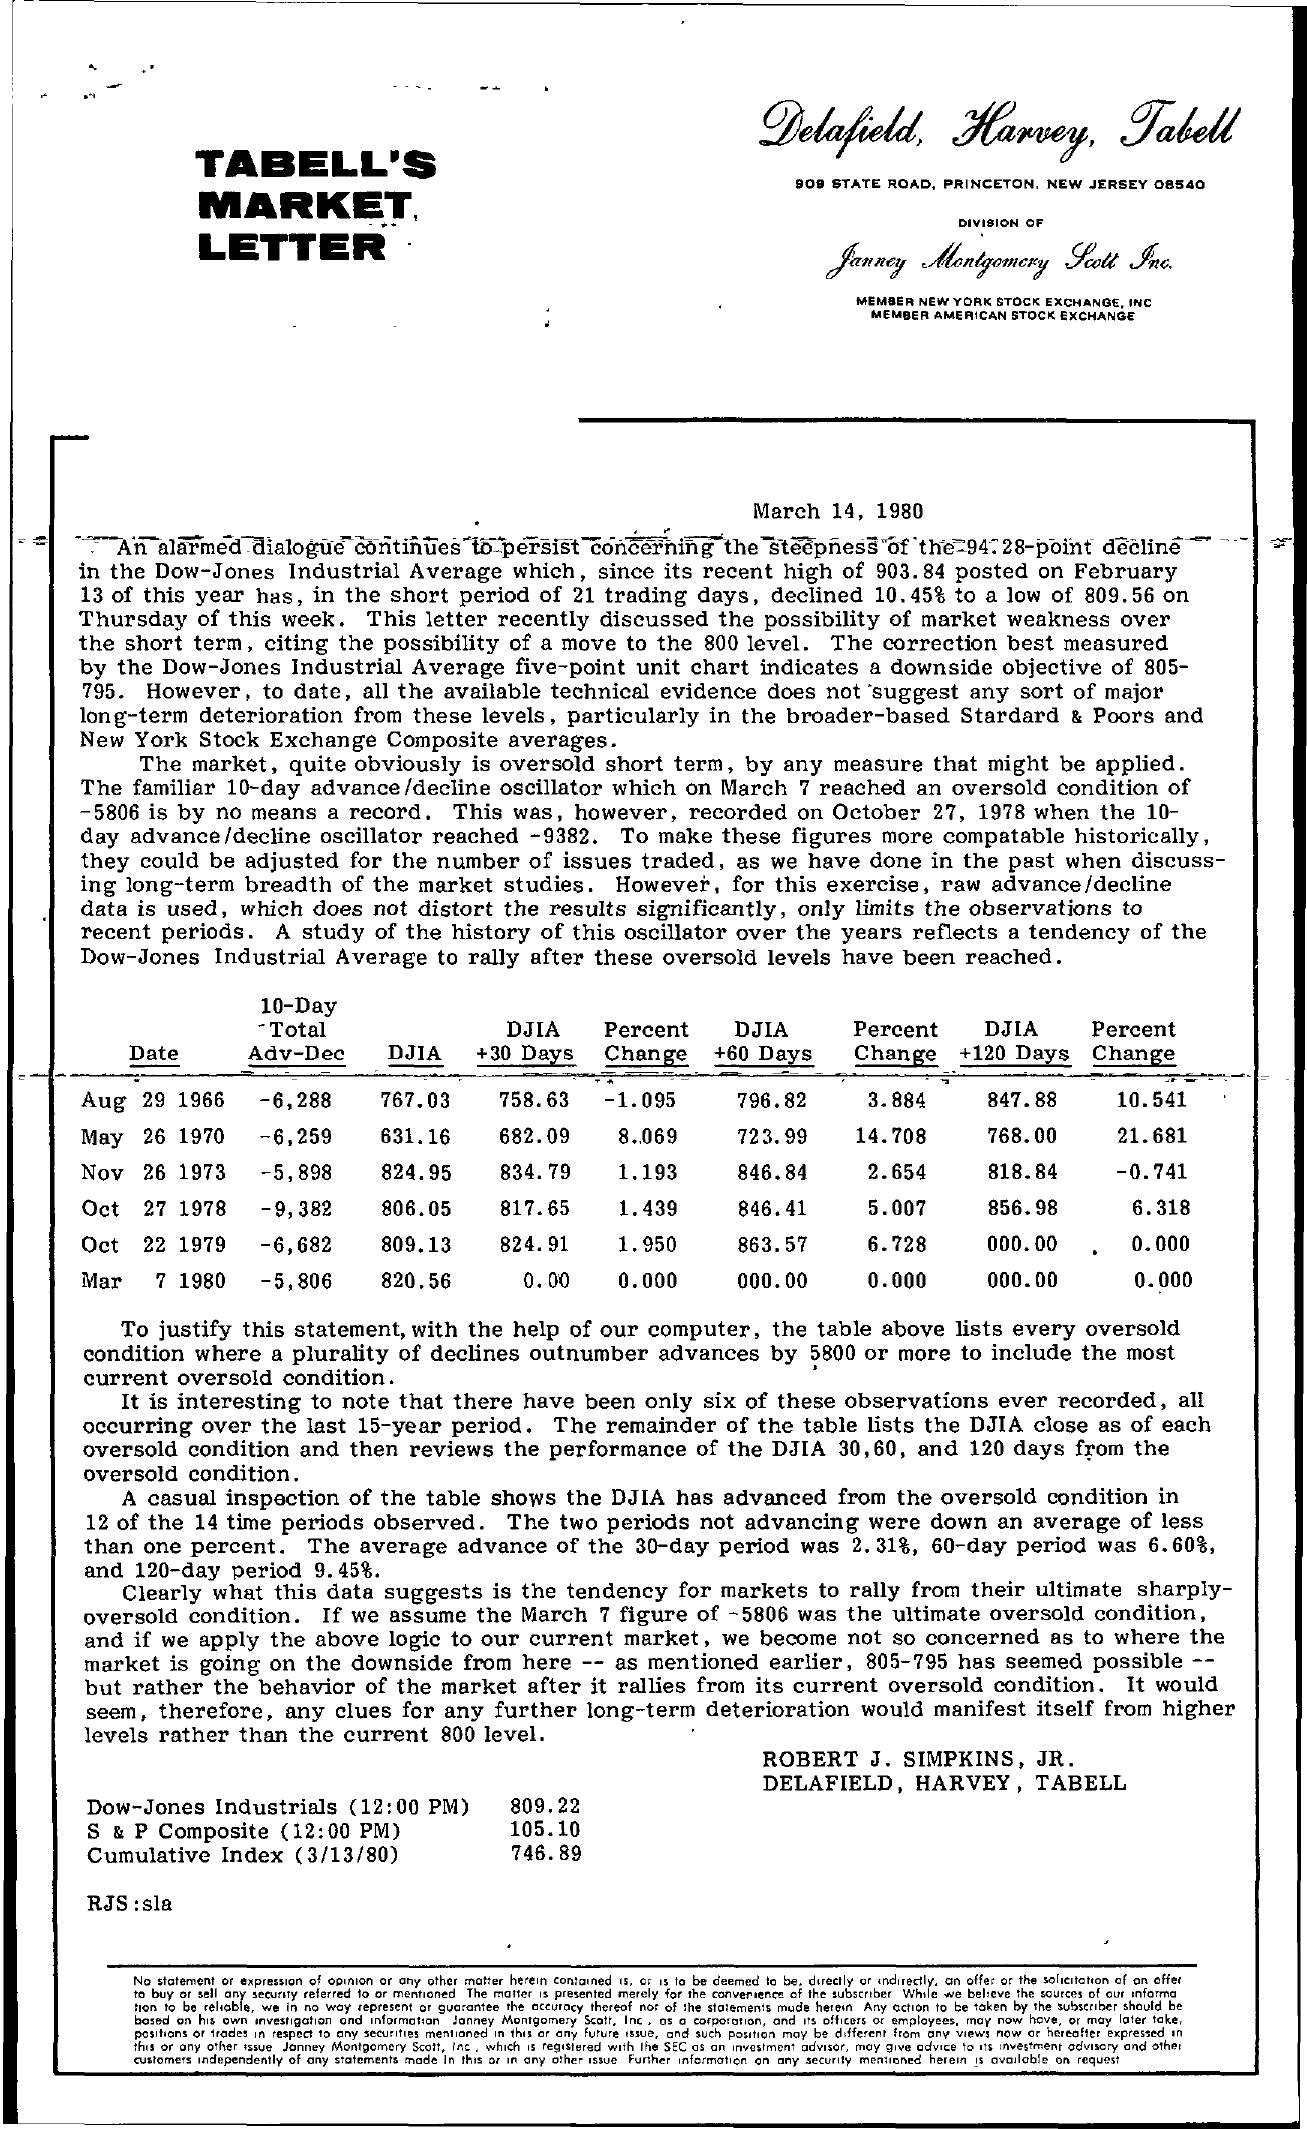 Tabell's Market Letter - March 14, 1980